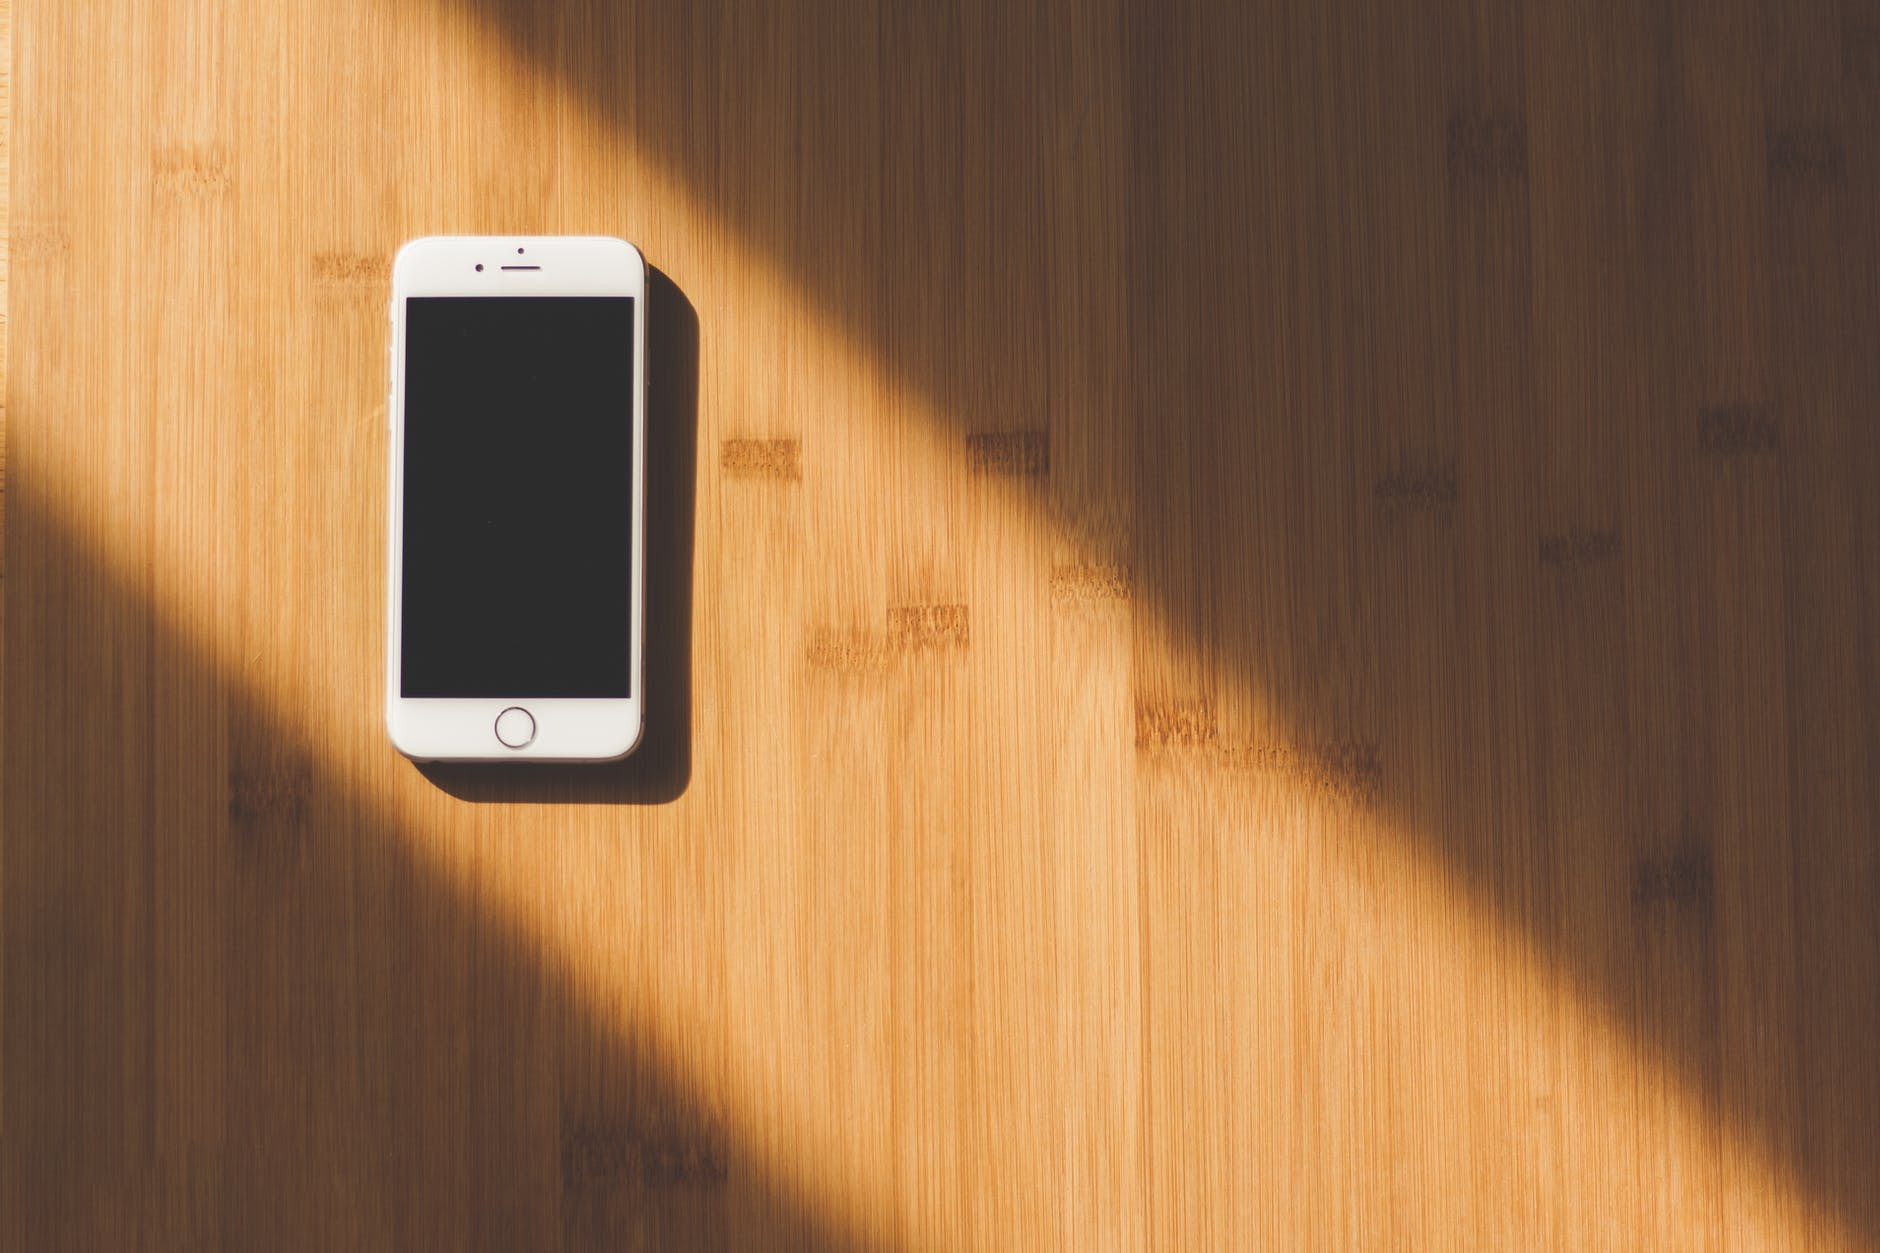 picture of a smart phone on a wooden desk with a ray of light illuminating the phone